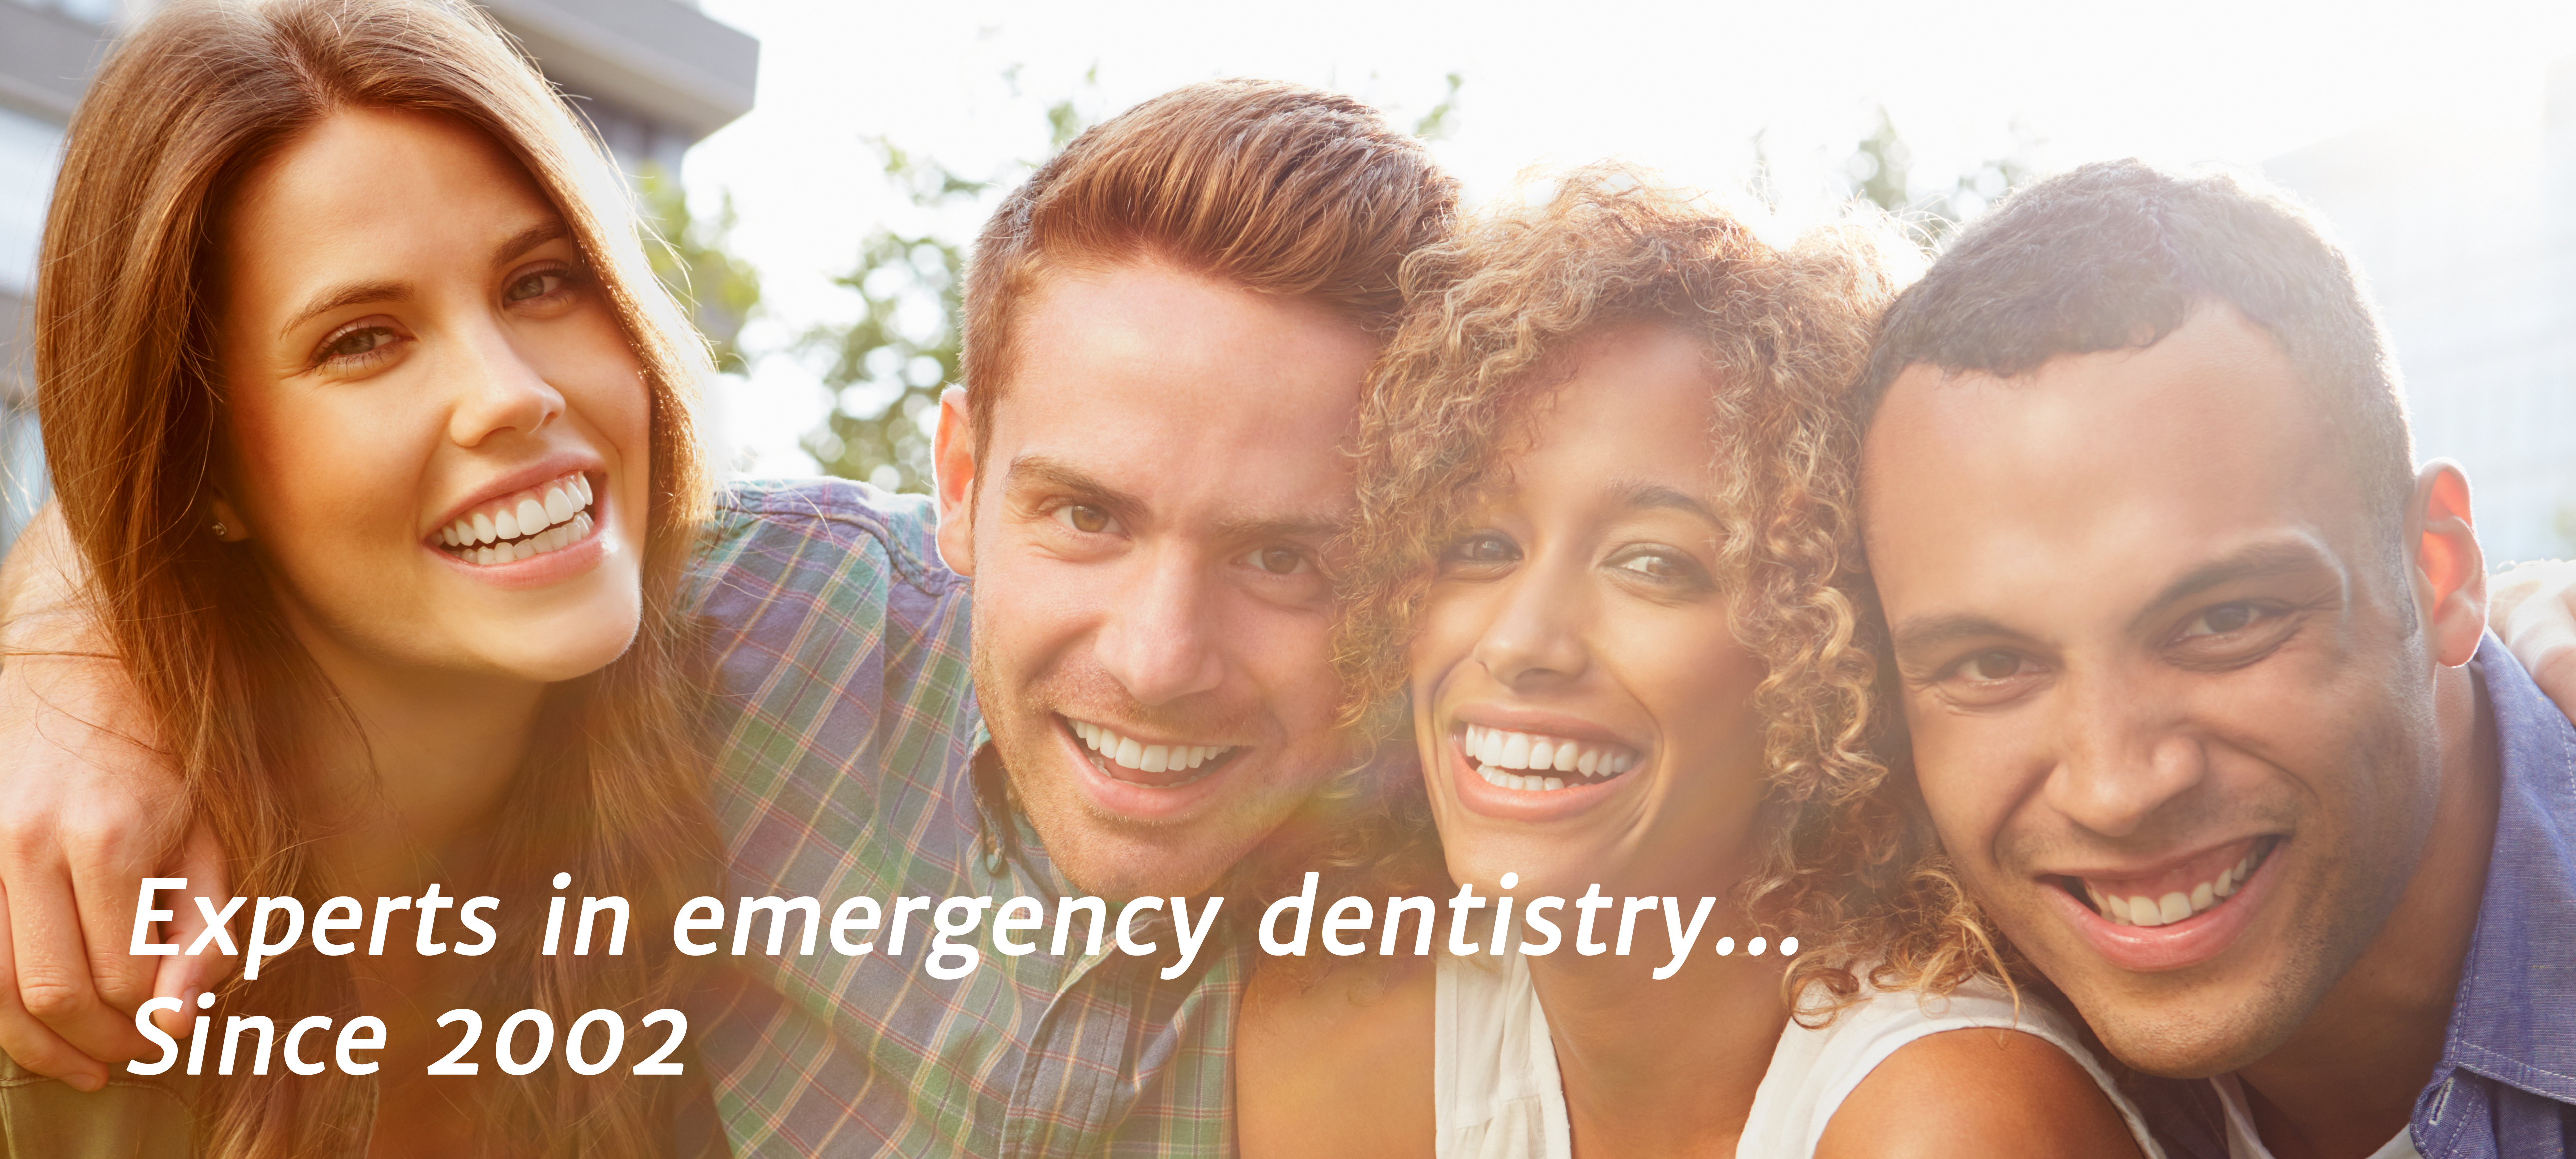 Picture of for emergency dentistry patients